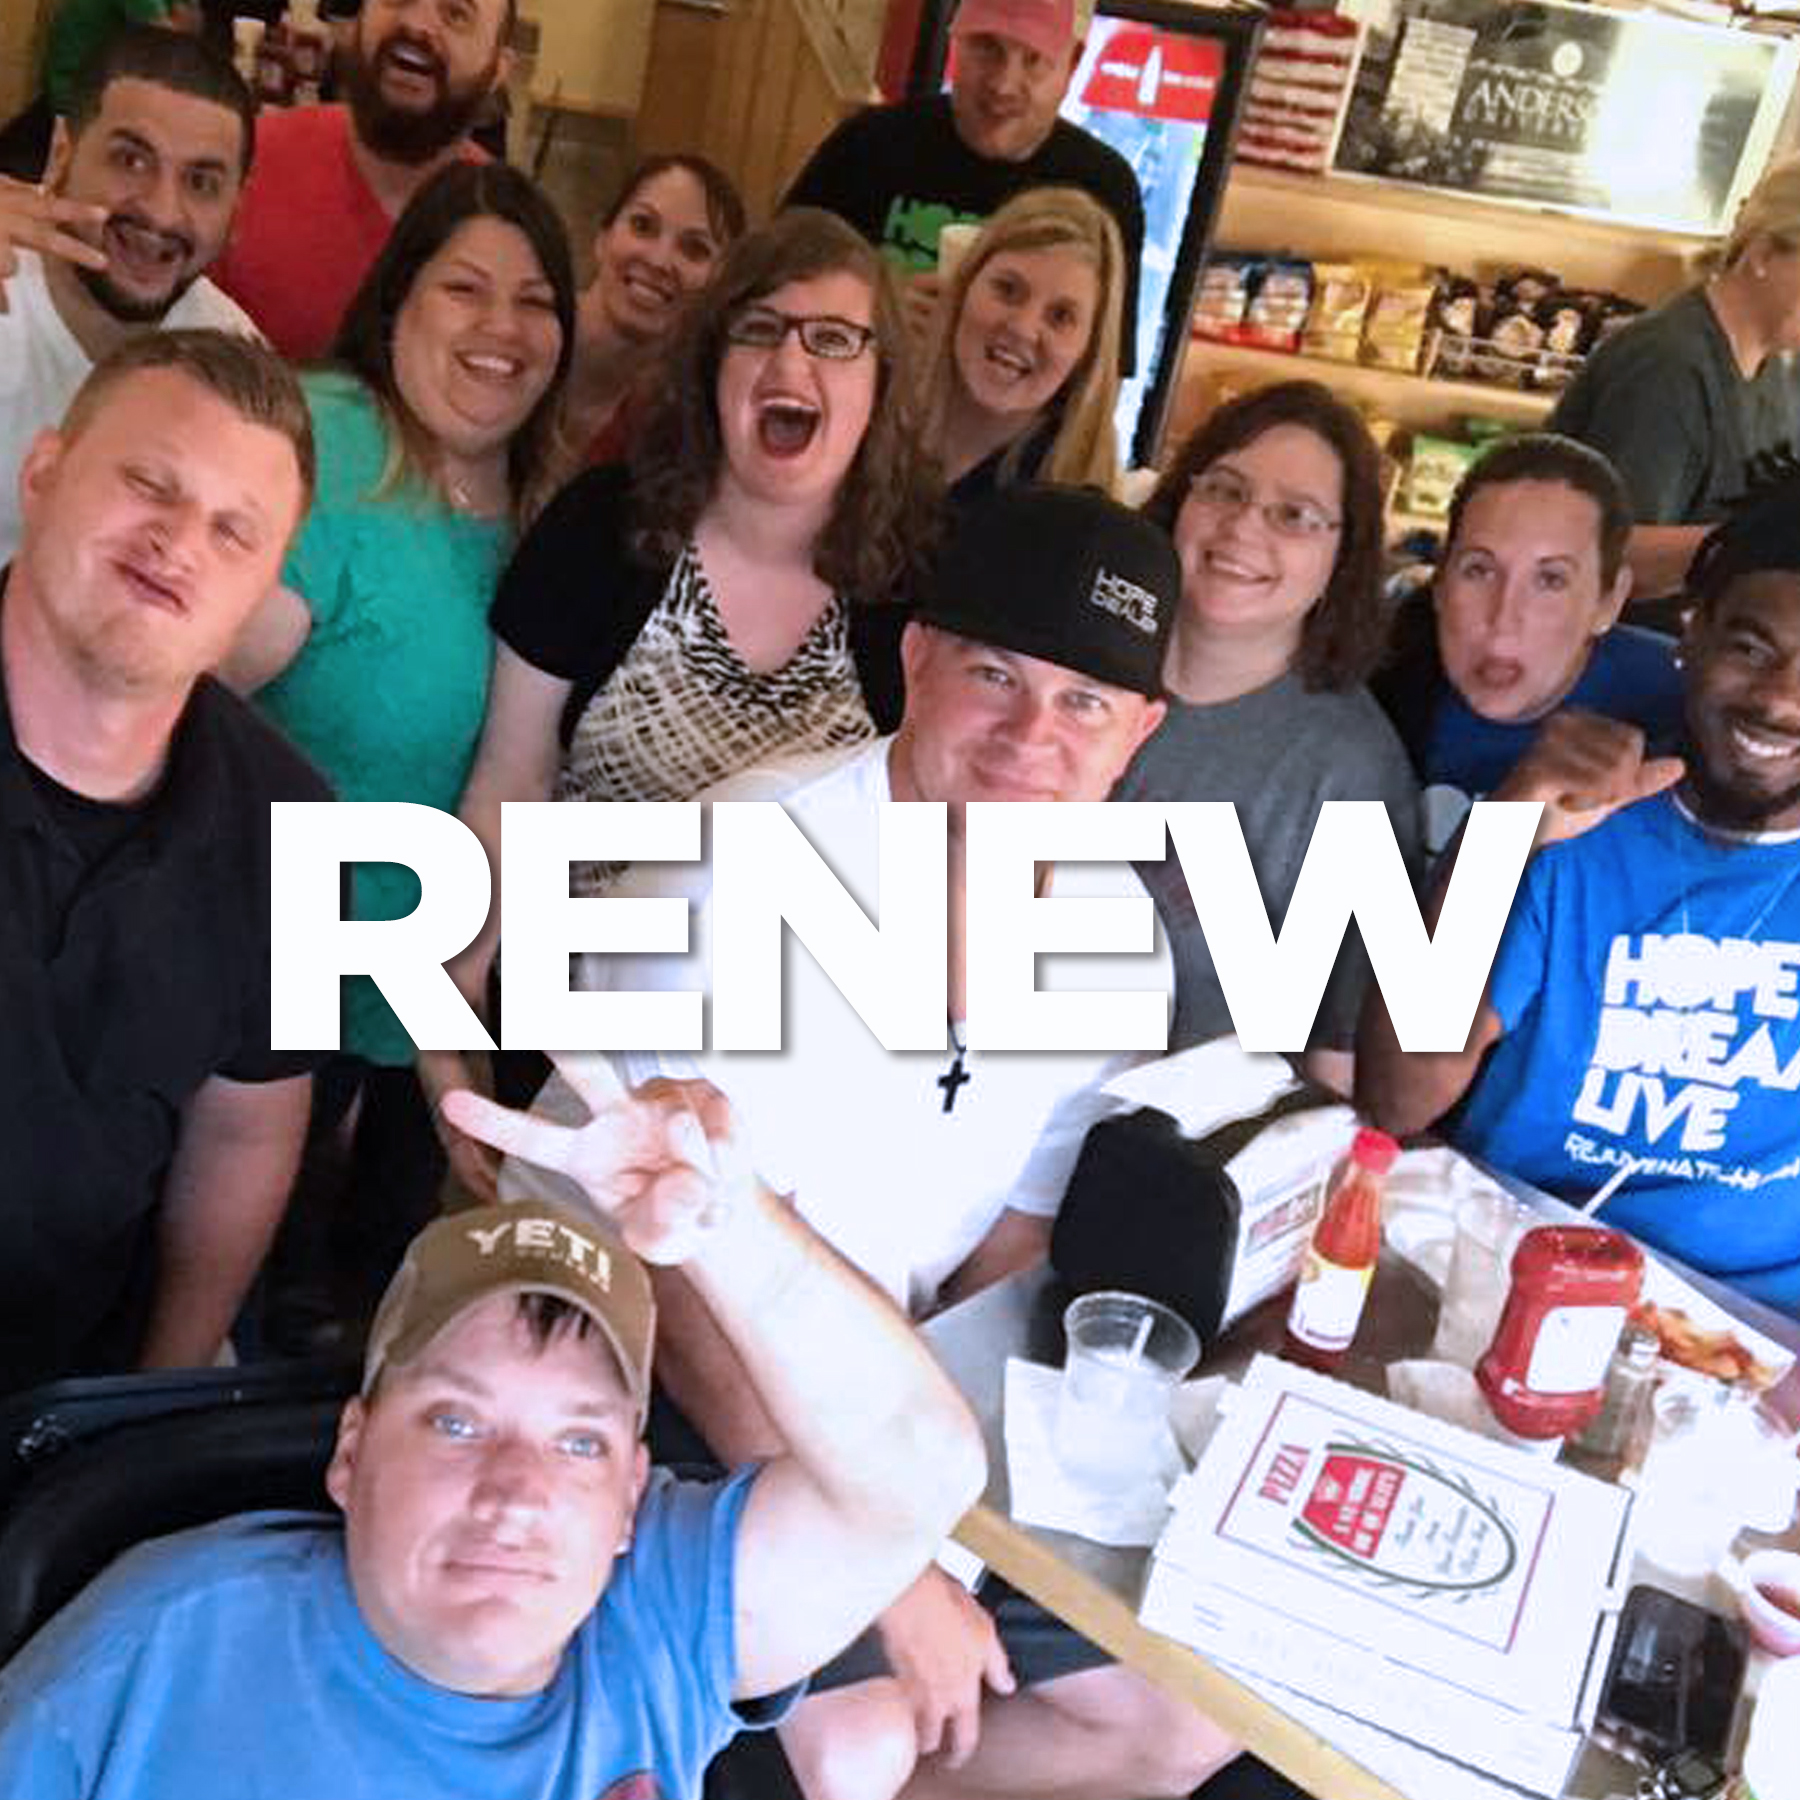 renew-groups-small-groups-rejuvenate-church